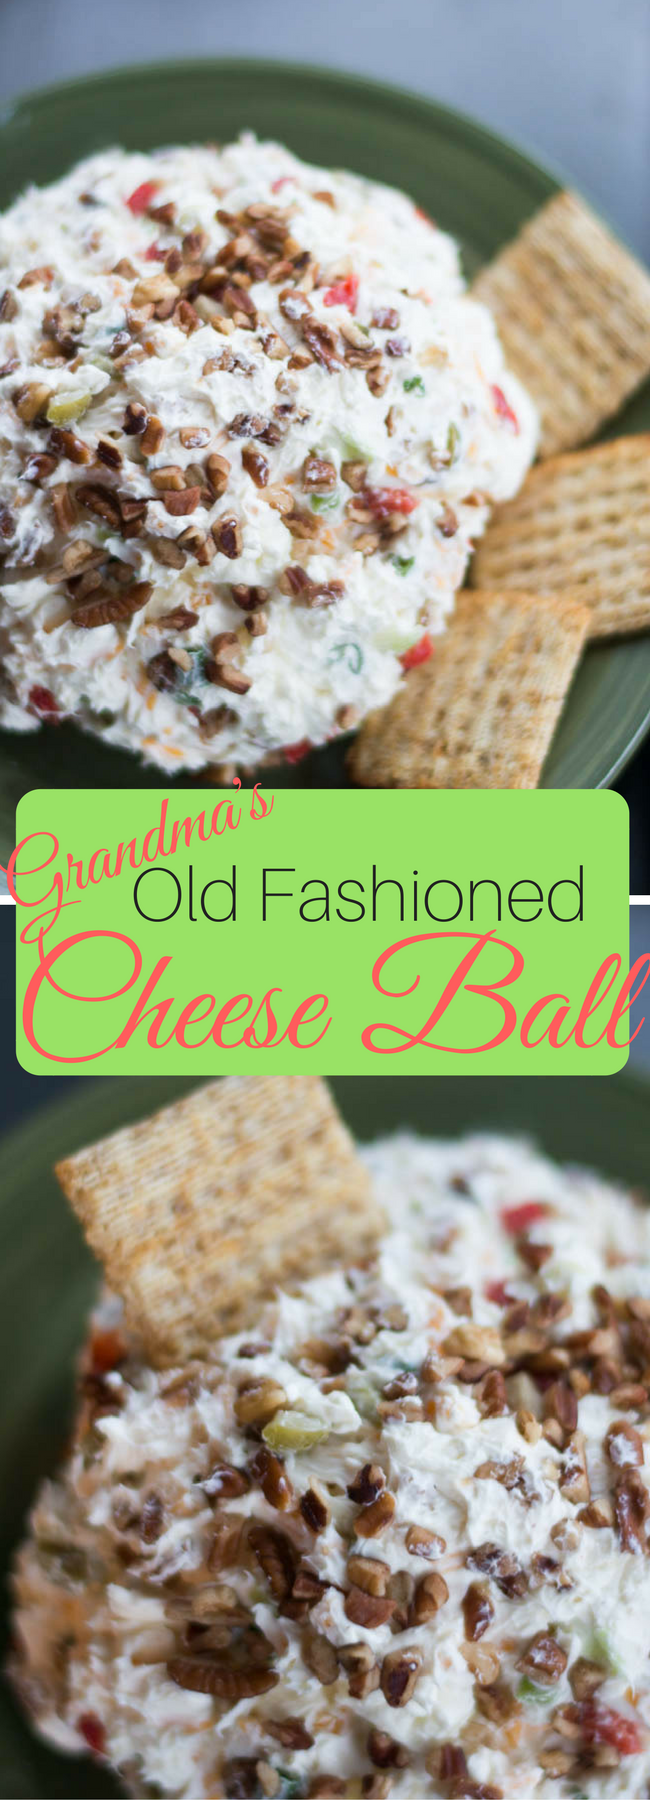 cheese ball recipes / cheese ball /cheese ball recipes easy / cheese ball recipes holiday / classic cheese ball / cheddar cheese ball / best cheese ball / cream cheese ball /holiday cheese ball